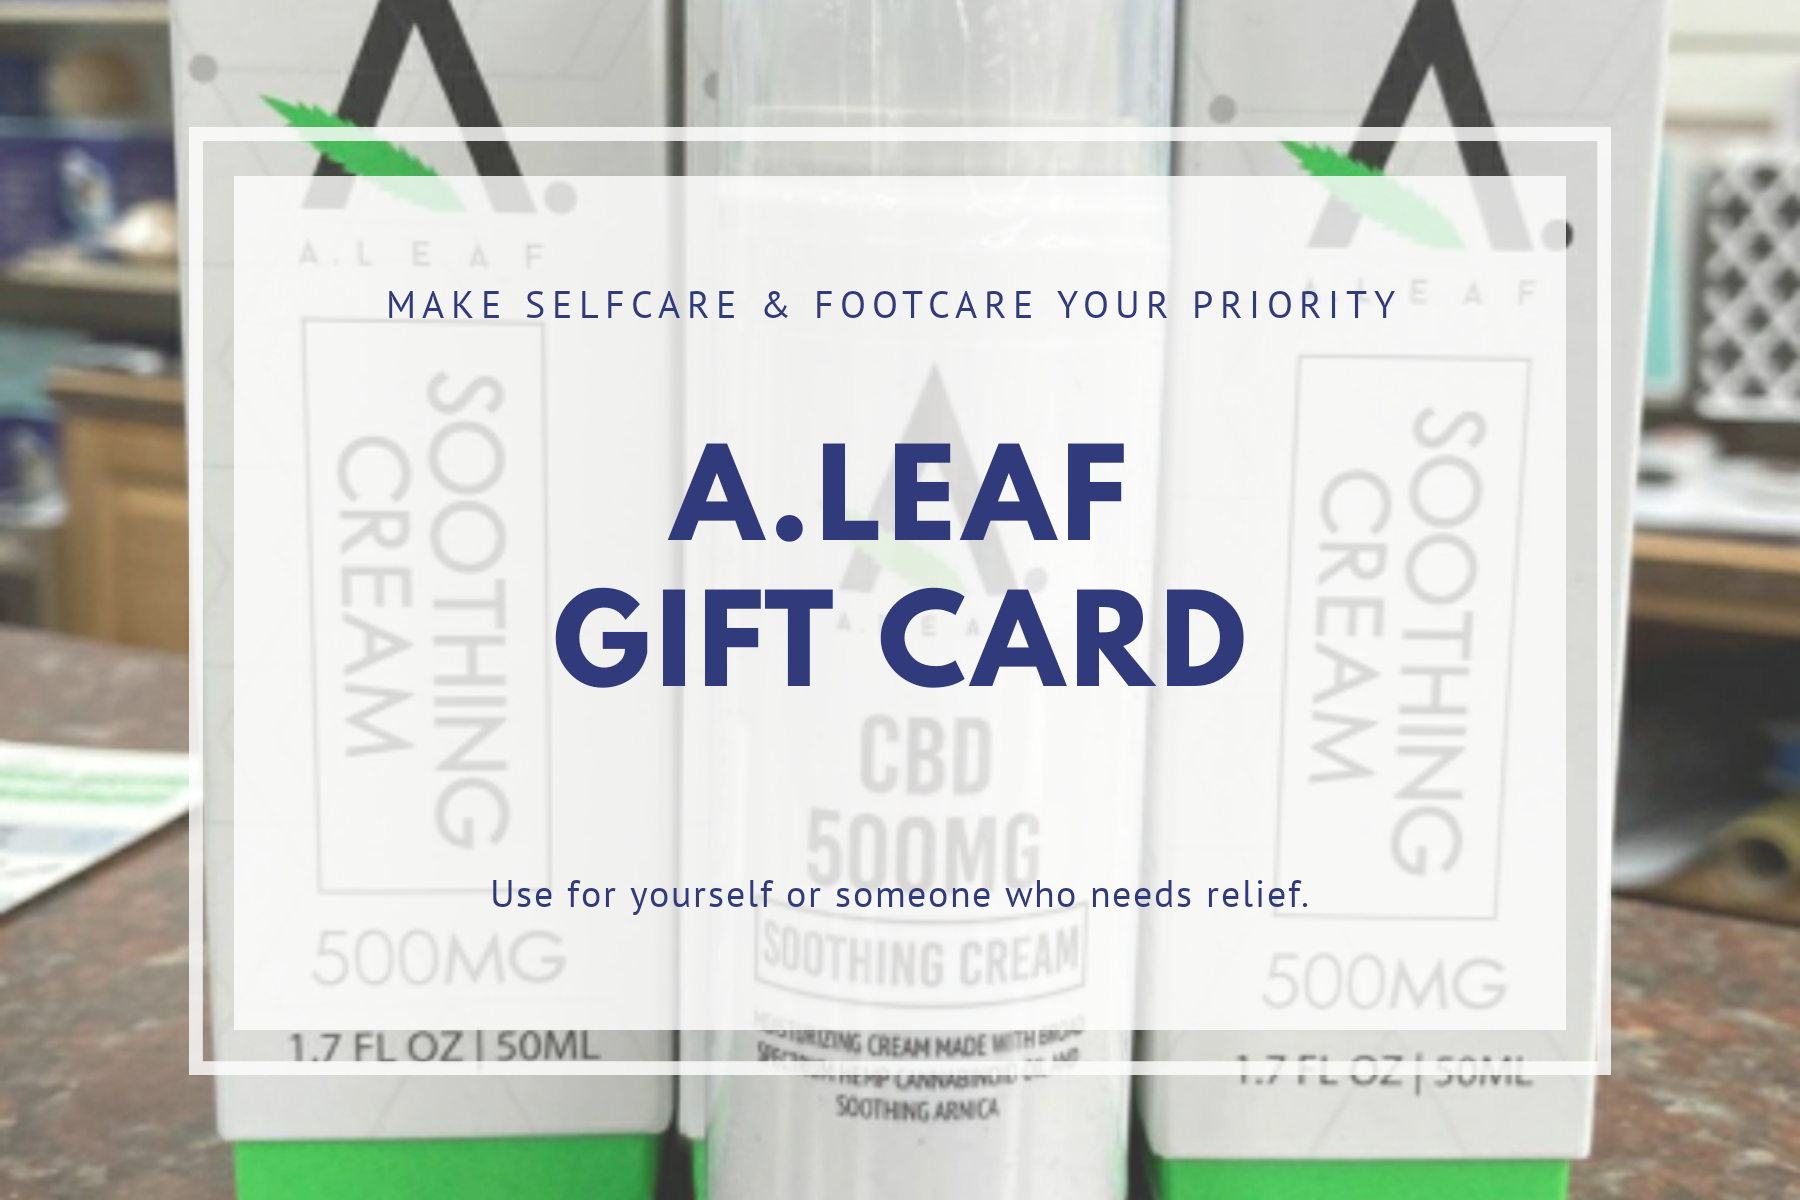 Selfcare & Footcare Gift Card